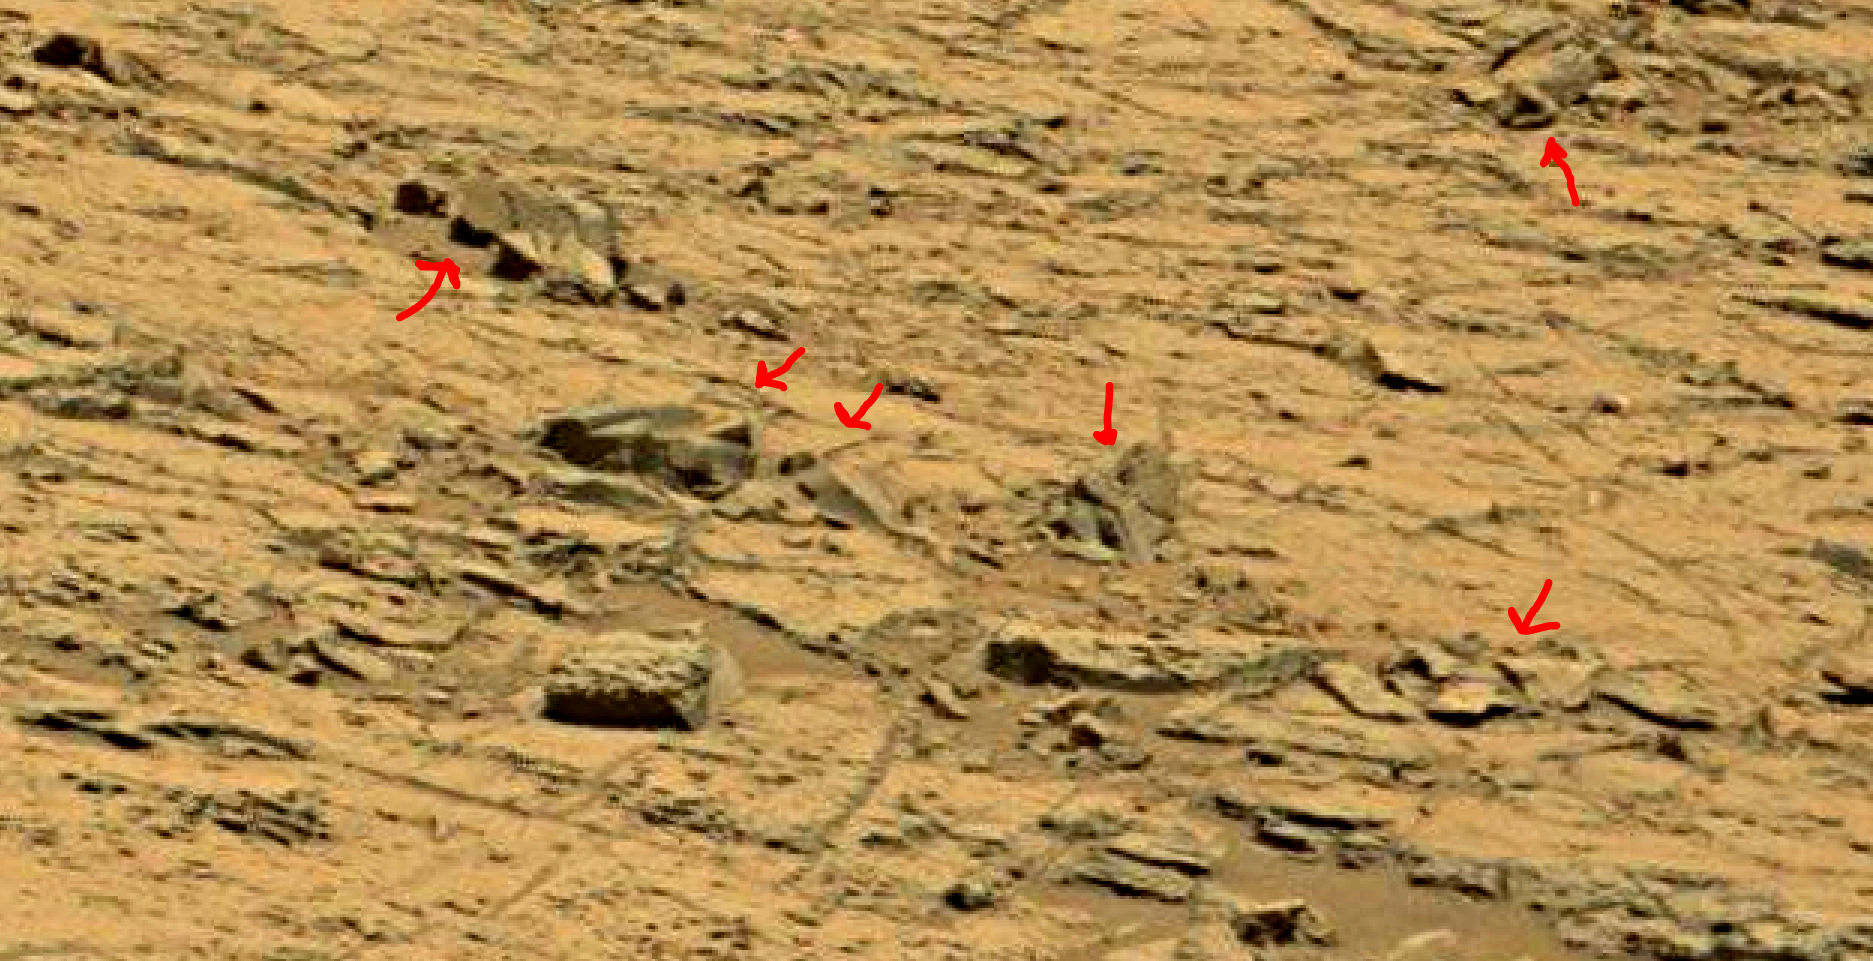 mars sol 1353 anomaly-artifacts 77 was life on mars